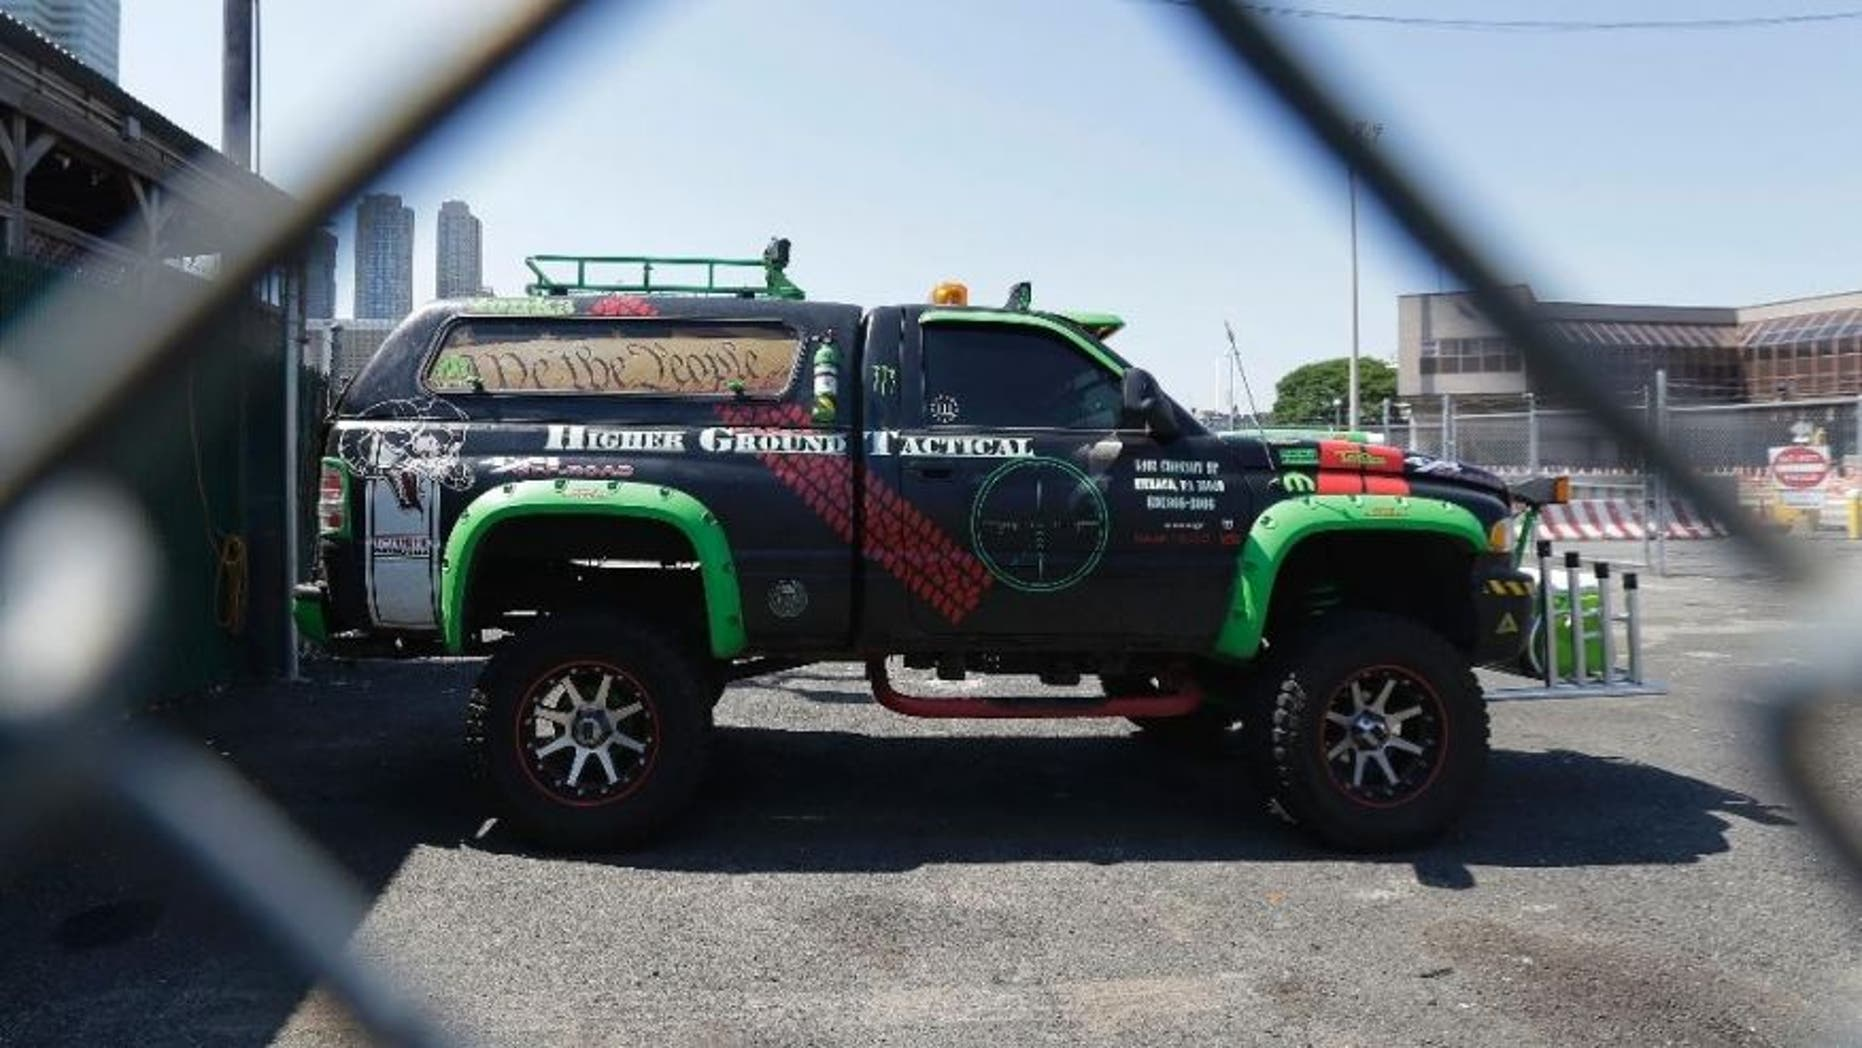 John Cramsey's vehicle sits in the impound lot of The Port Authority of New York & New Jersey.